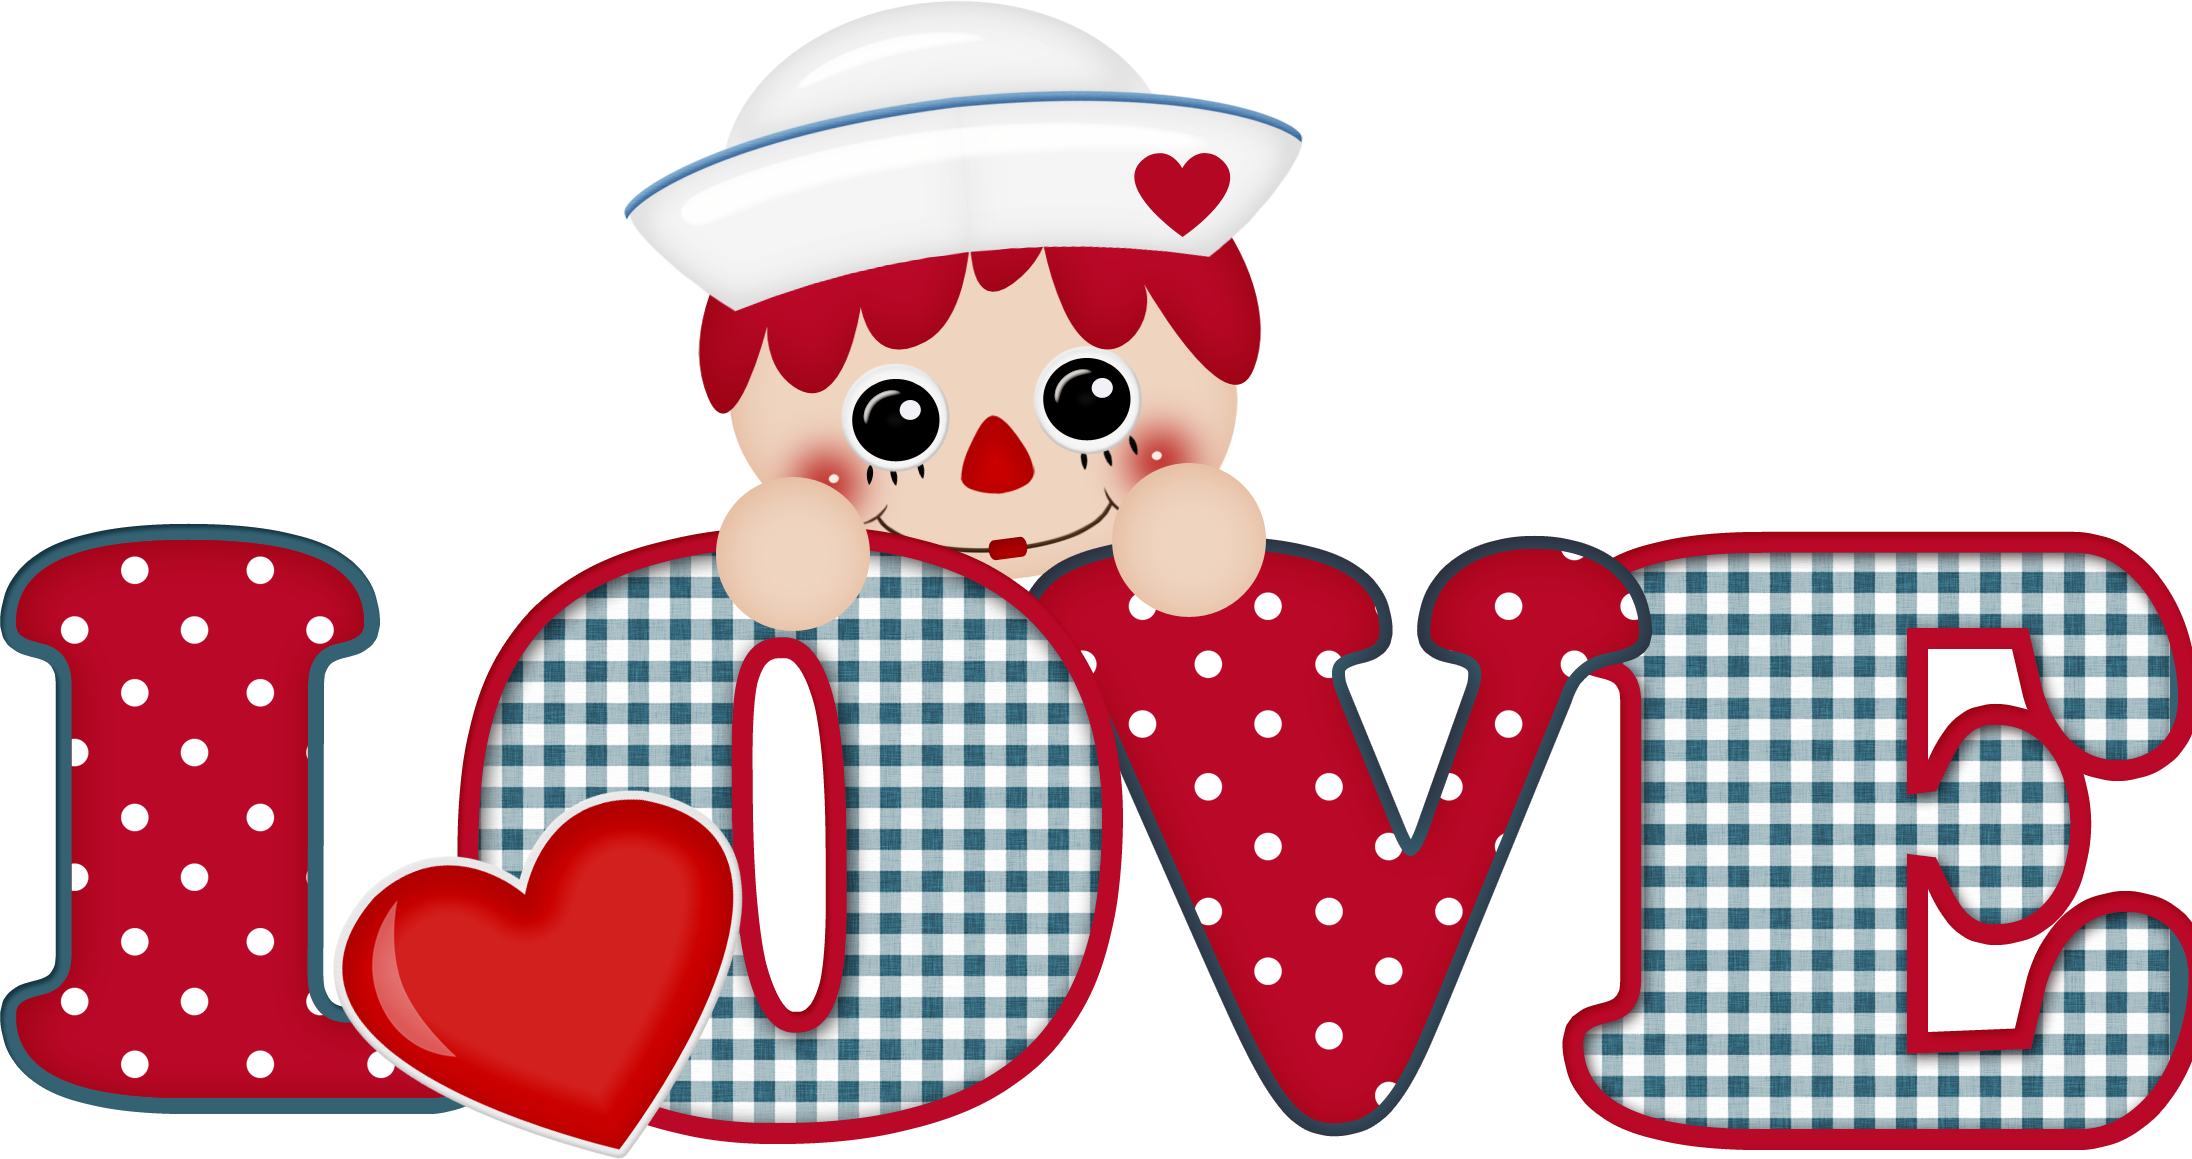 Imagenes country raggedy ann. Kitten clipart gingerly